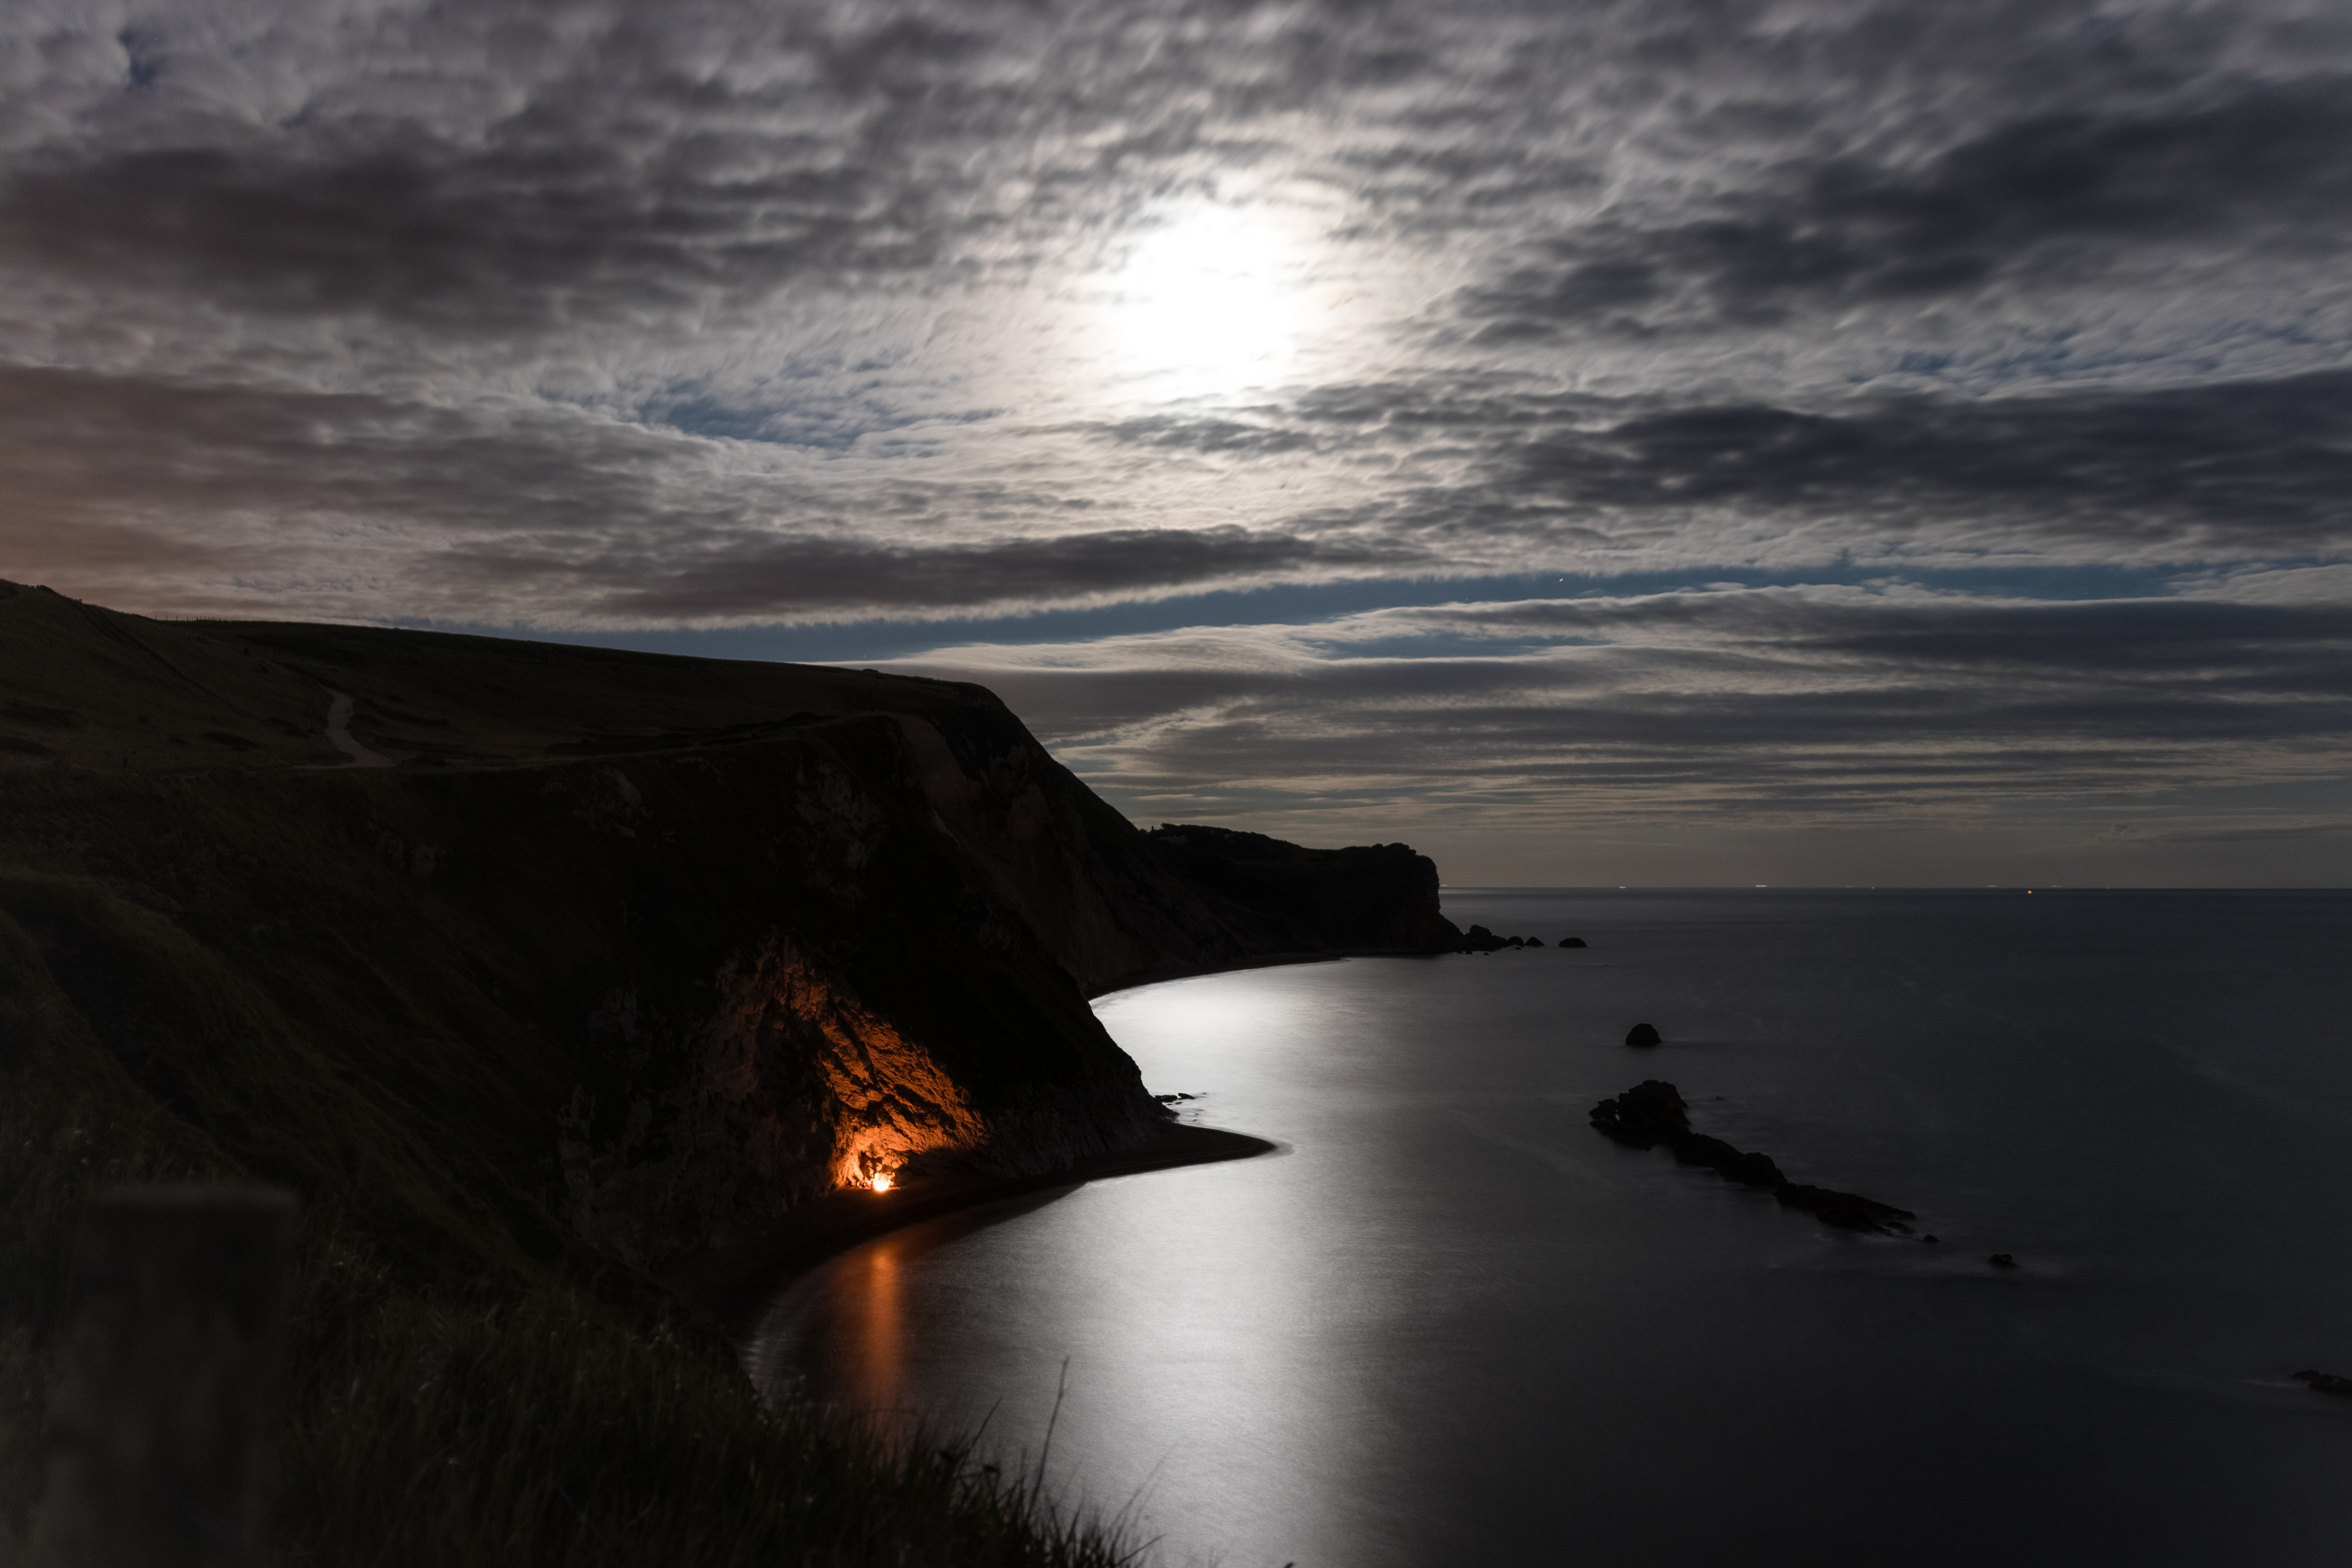 landscape photography of cliff under gray sky at nighttime